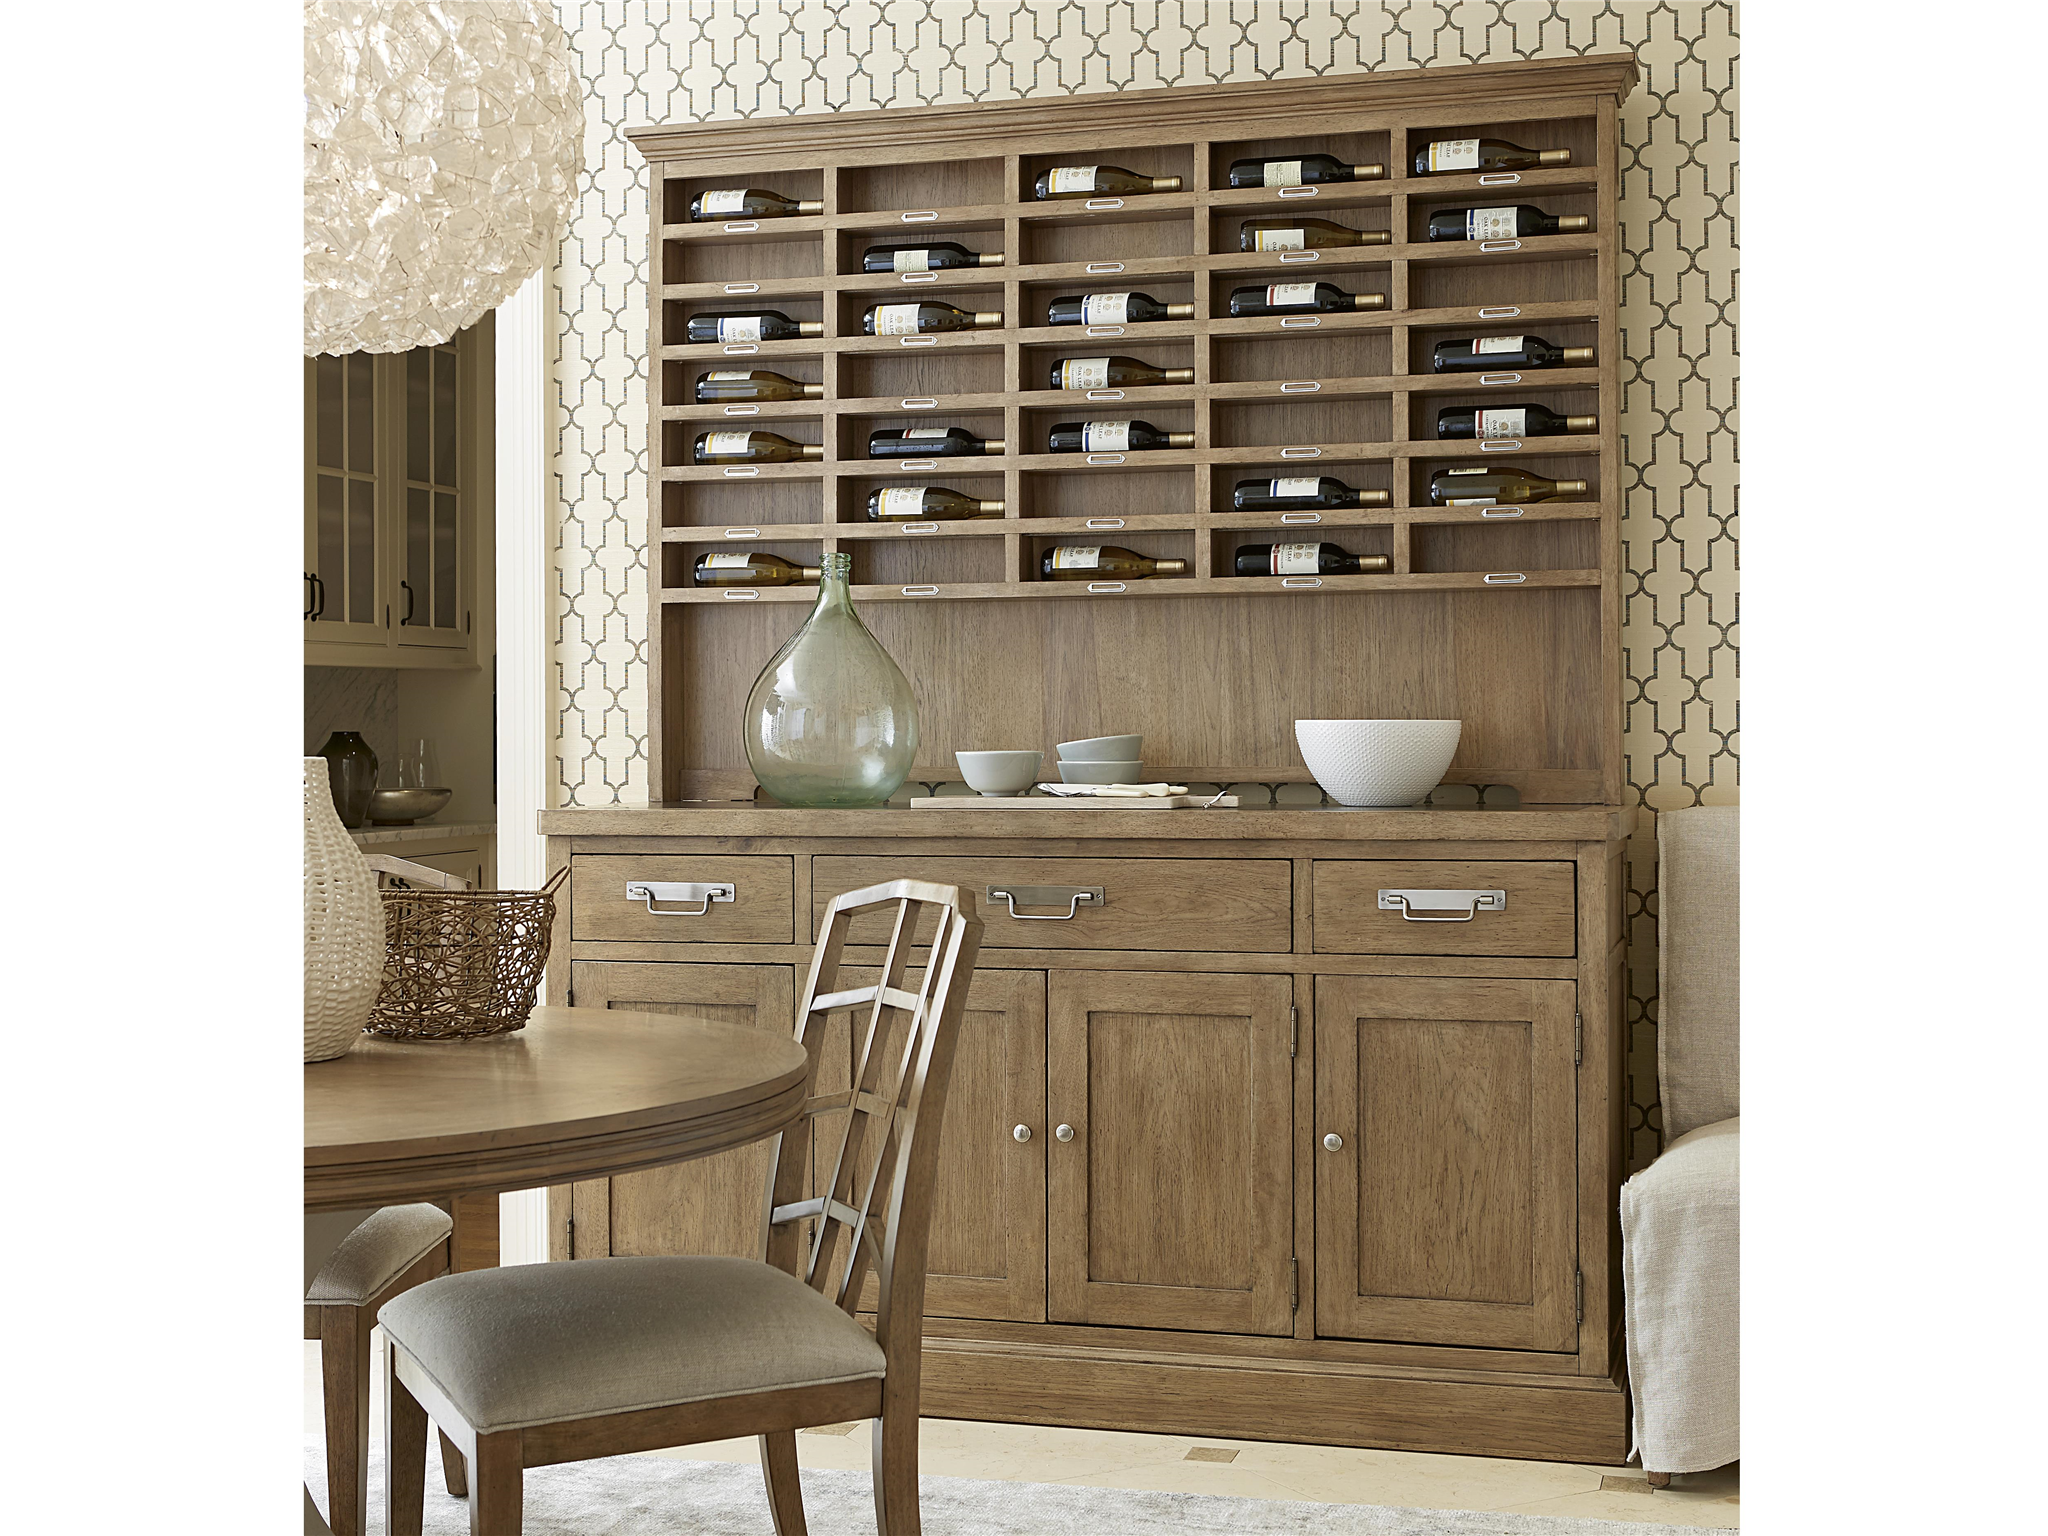 Sideboard with Sommelier's Hutch